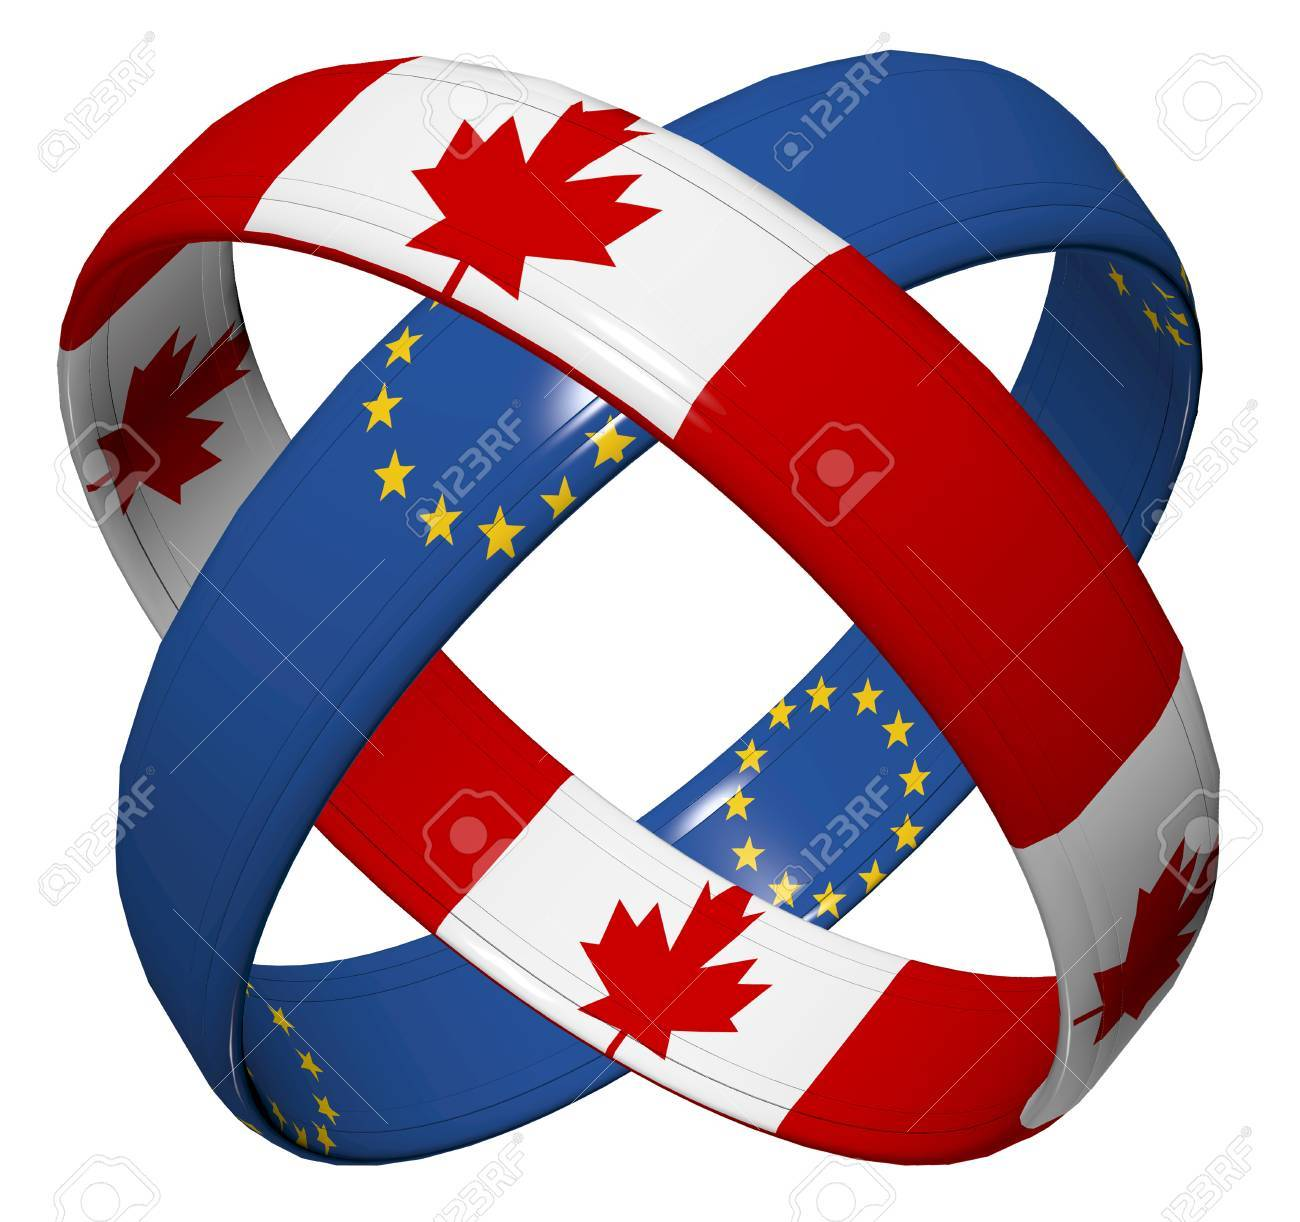 Ceta Trade Agreement Symbol For The Comprehensive Economic